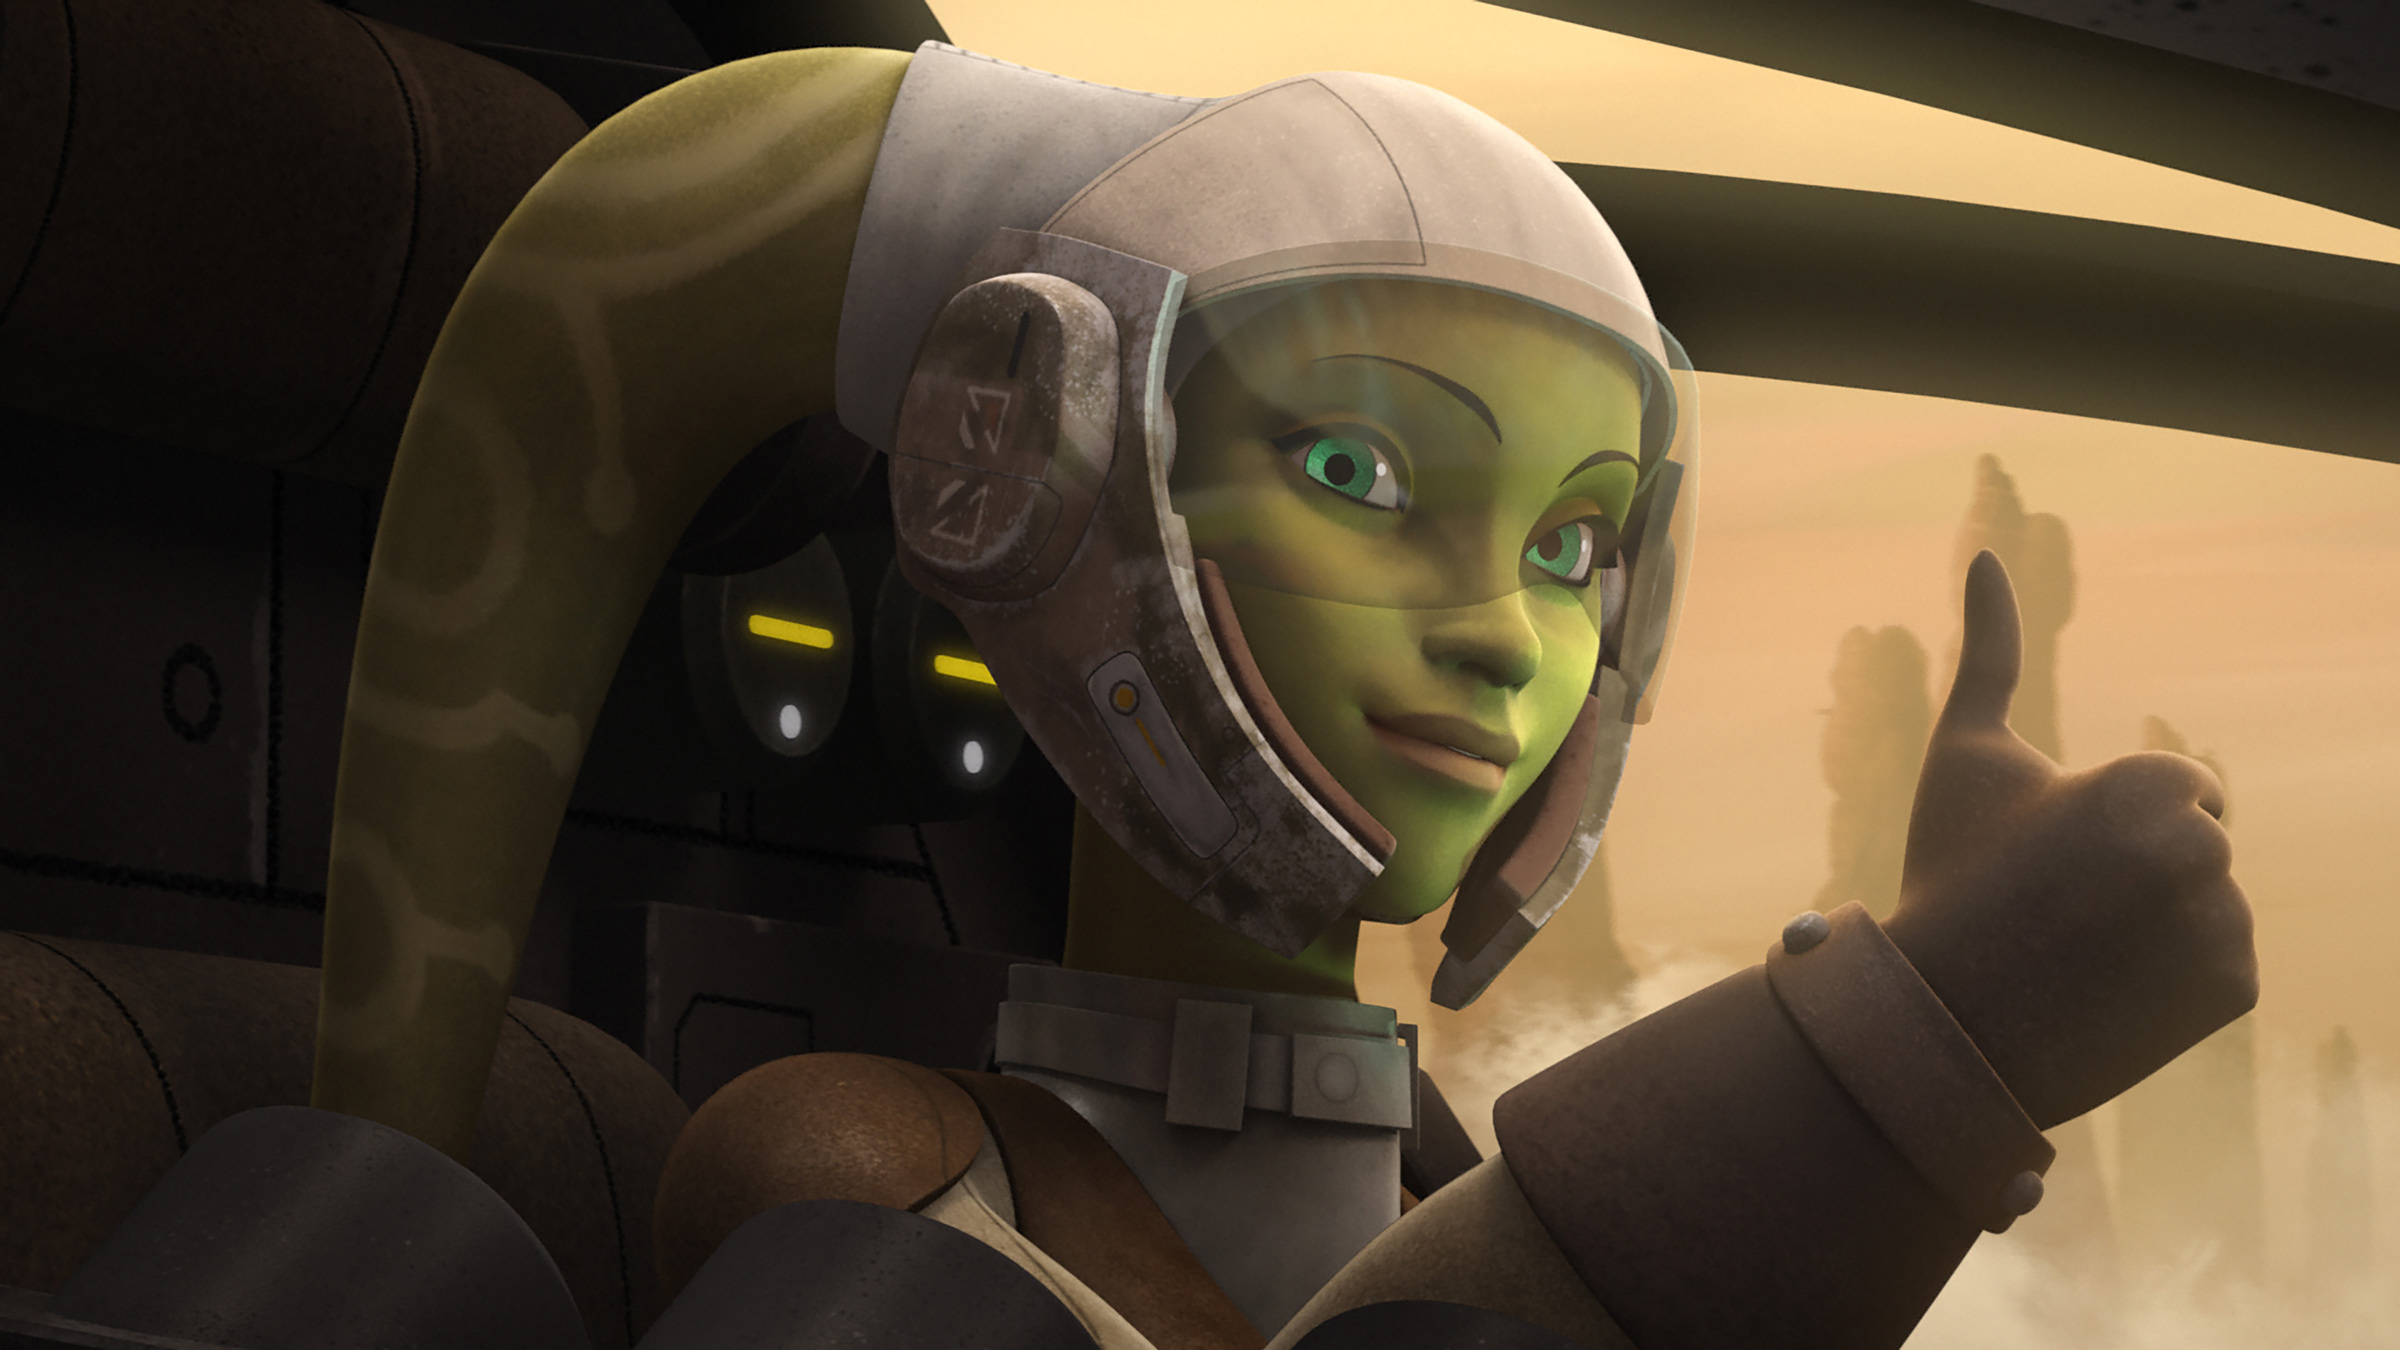 Who Is The Better Pilot Hera Syndulla Or Han Solo